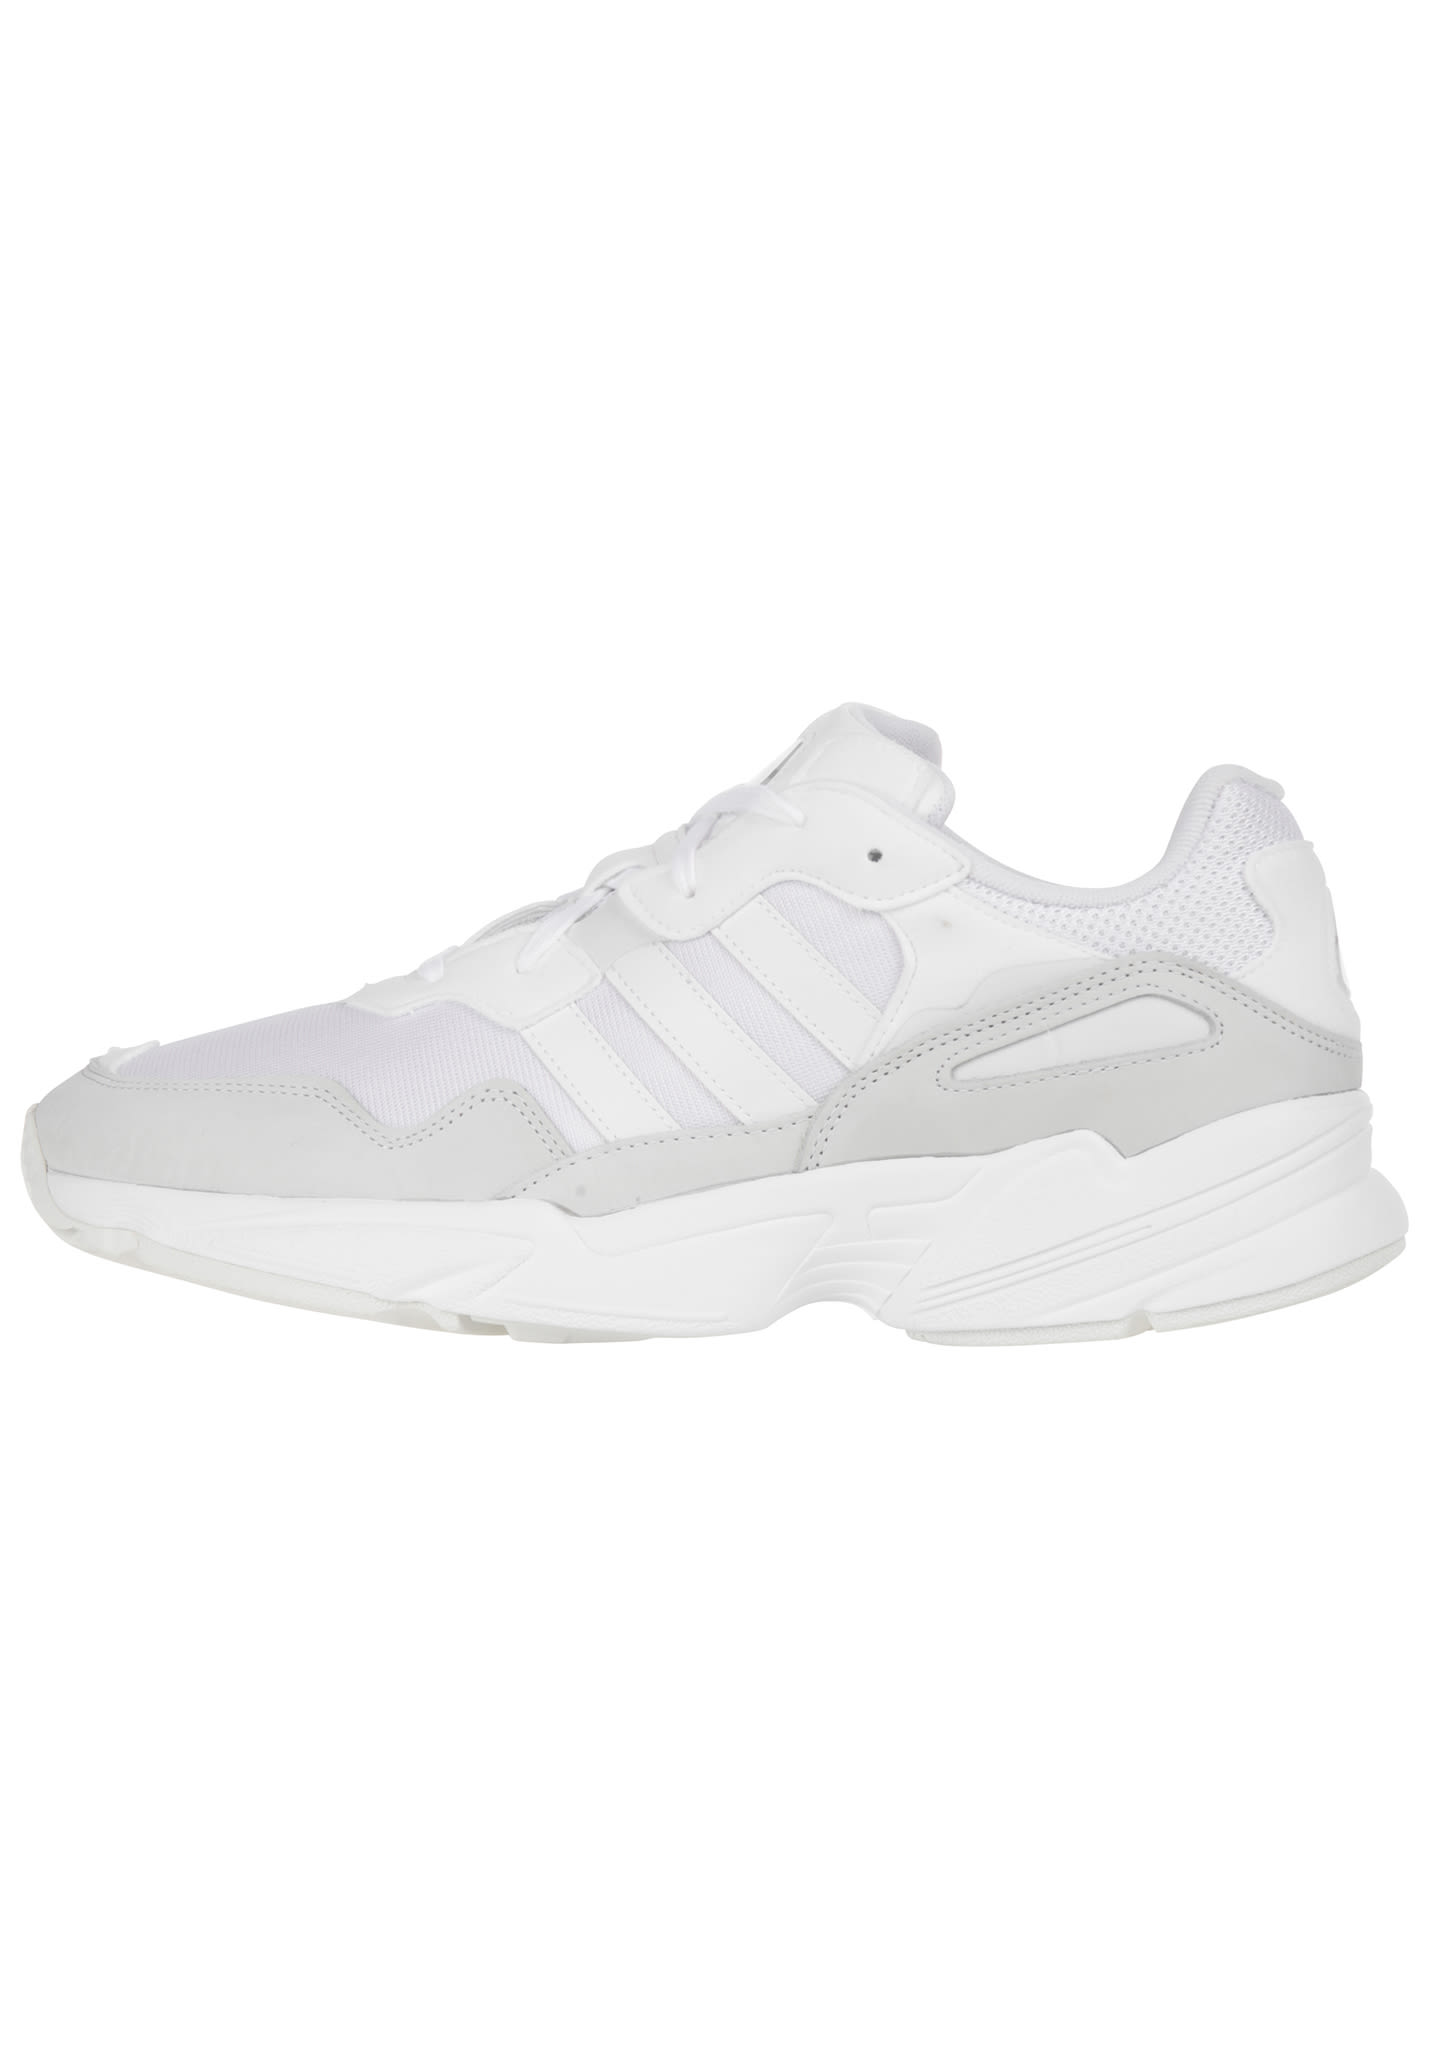 ADIDAS ORIGINALS Yung-96 - Sneakers for Men - White - Planet Sports 3b5eb1a1520